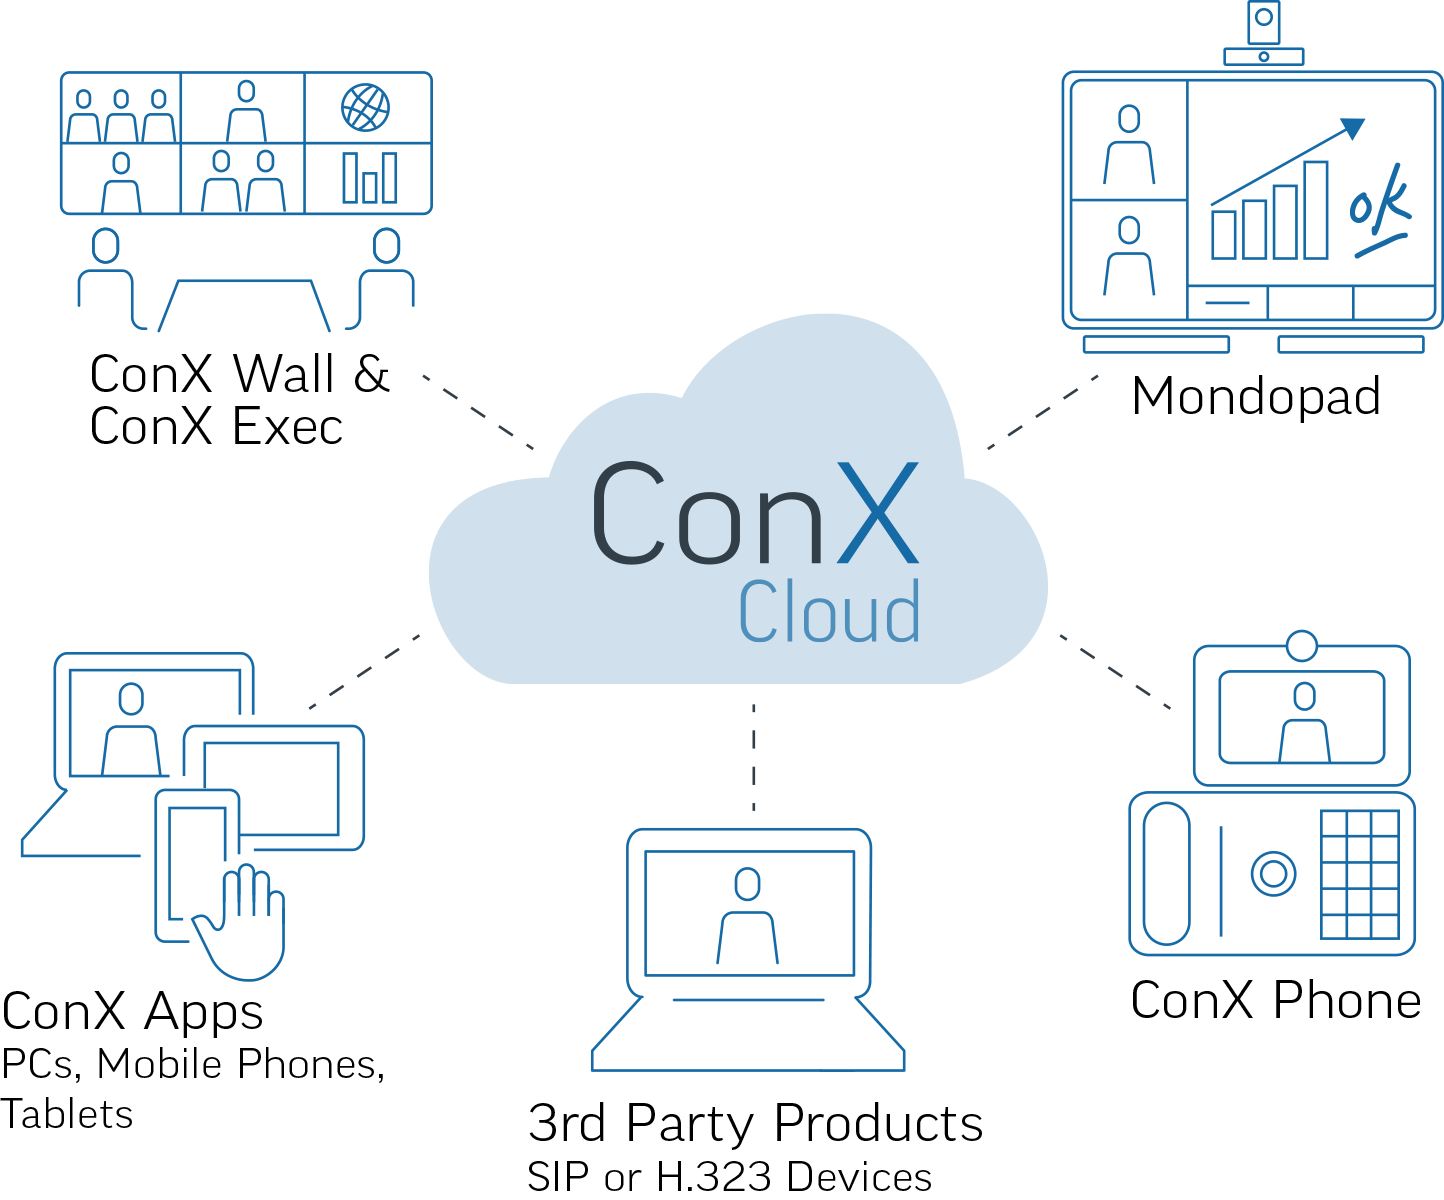 ConX Video Meeting, 50 Participants, 1 Year Subscription - E Delivery